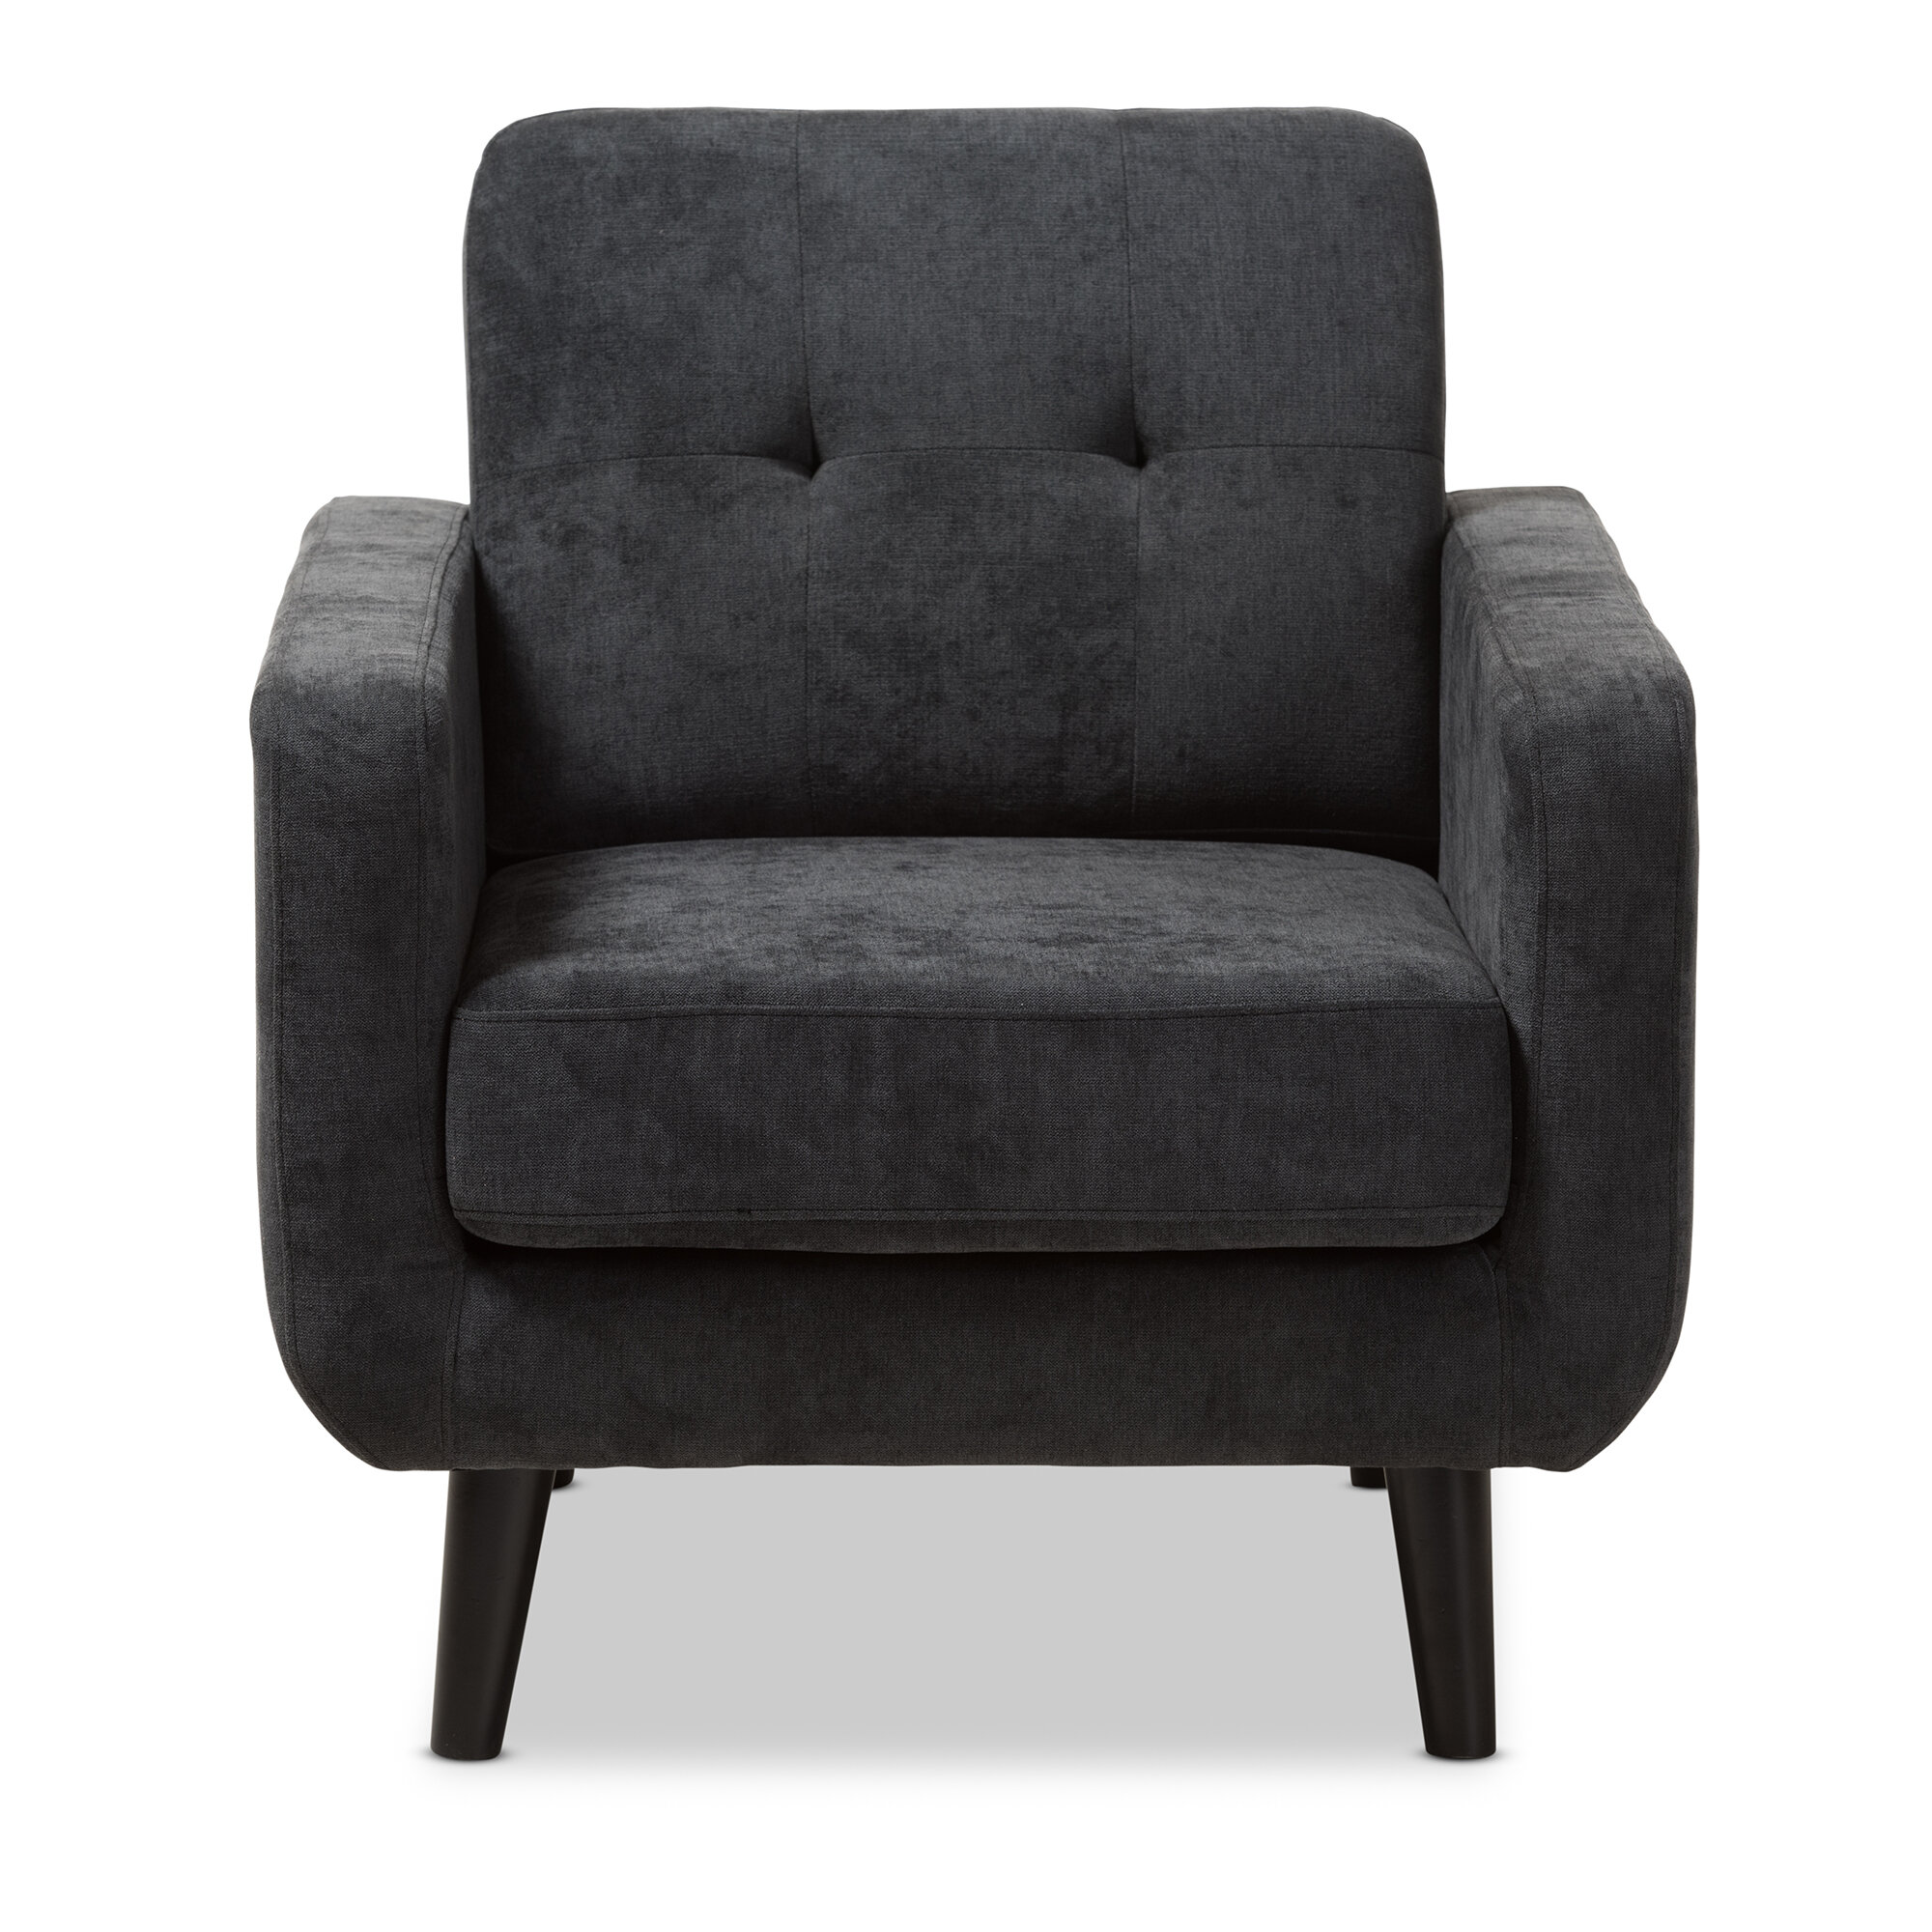 Details About George Oliver Doty Club Chair